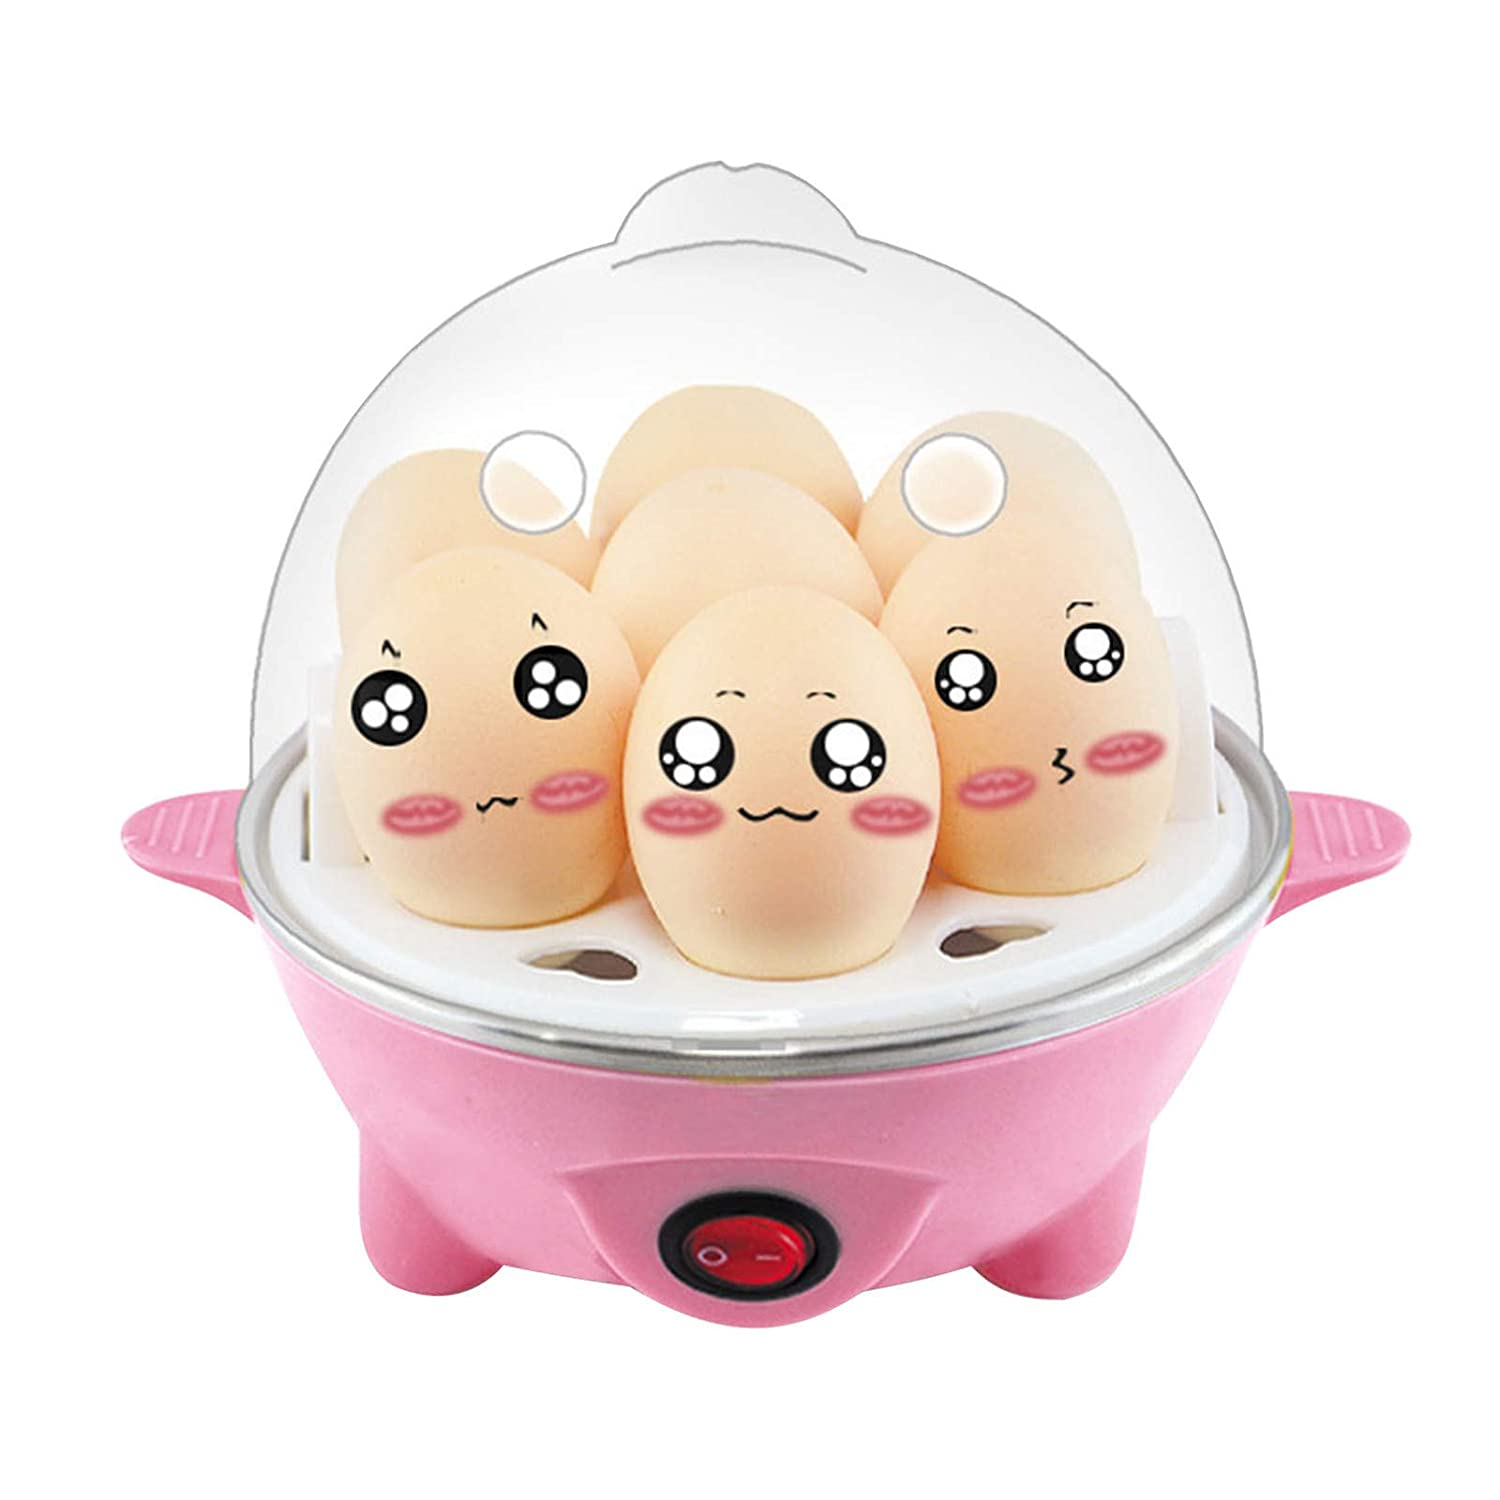 FIgures Rapid Egg Cooker Complete Free Shipping Easy Poacher Surprise price Capac Electric 7